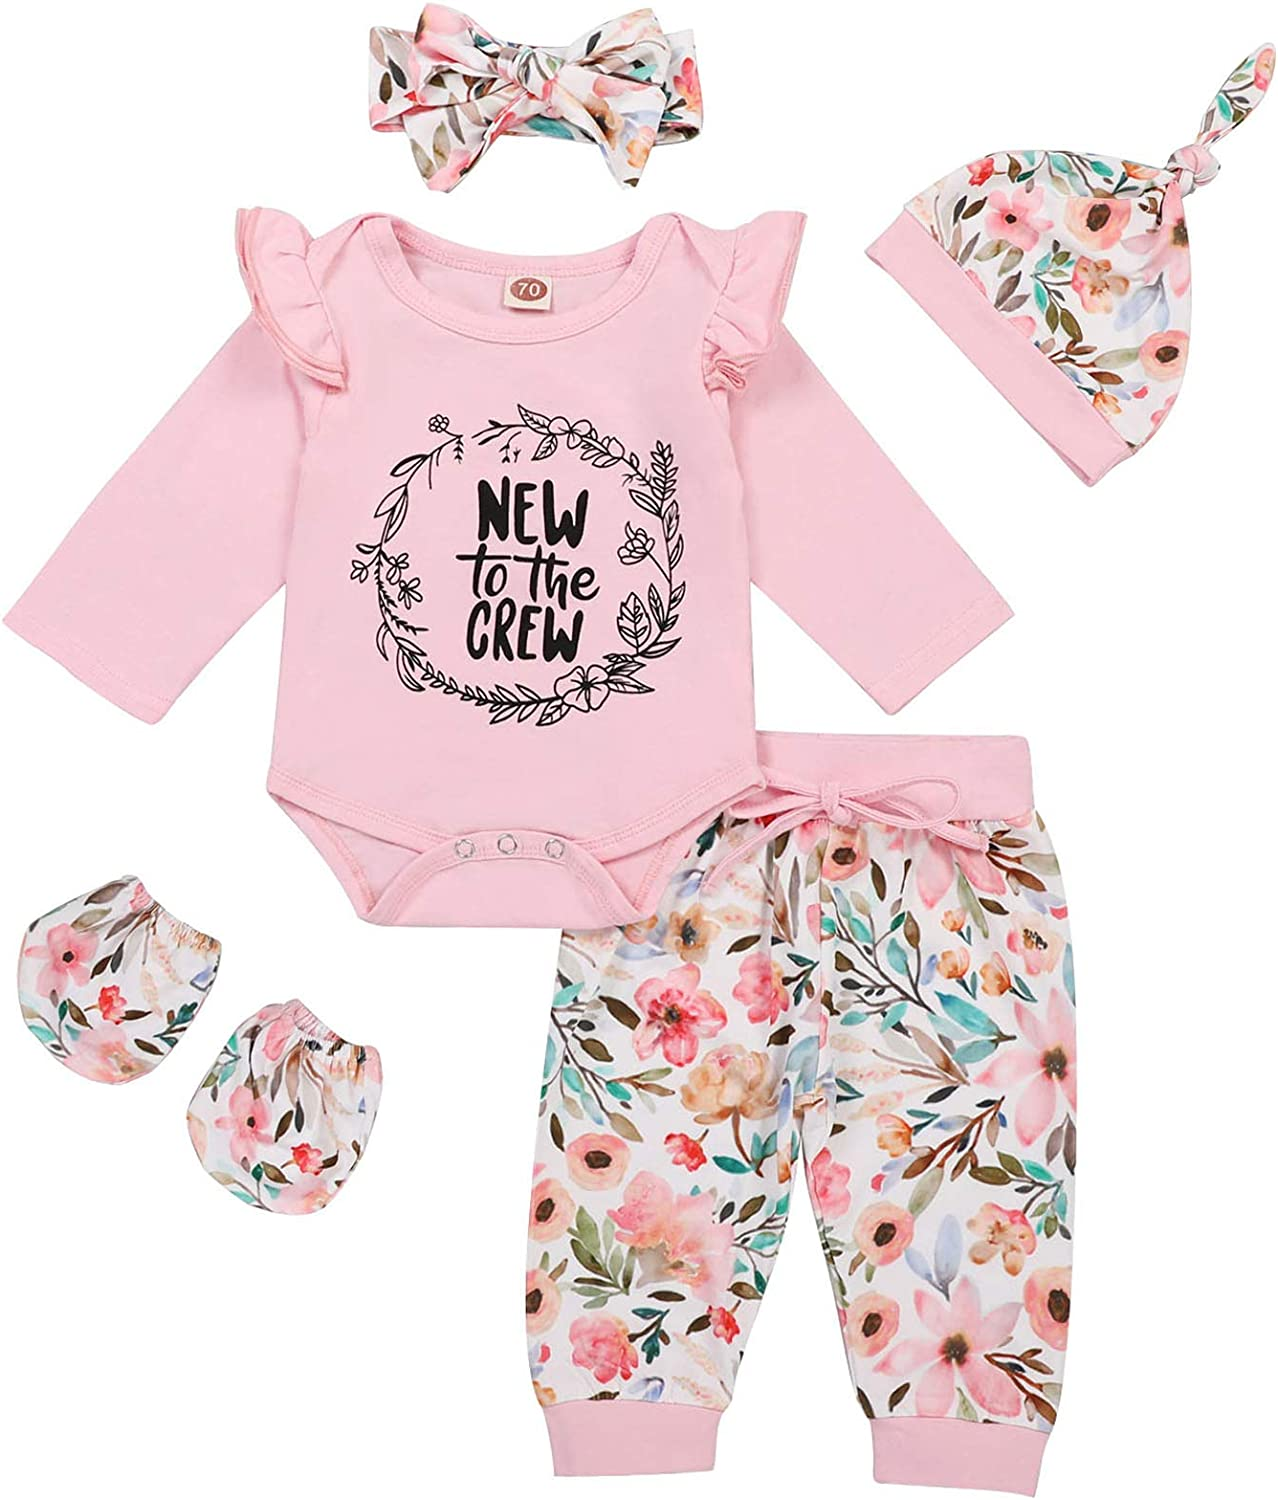 Newborn Baby Girl Outfits Daddy's Little Girl Letter Print Rompe